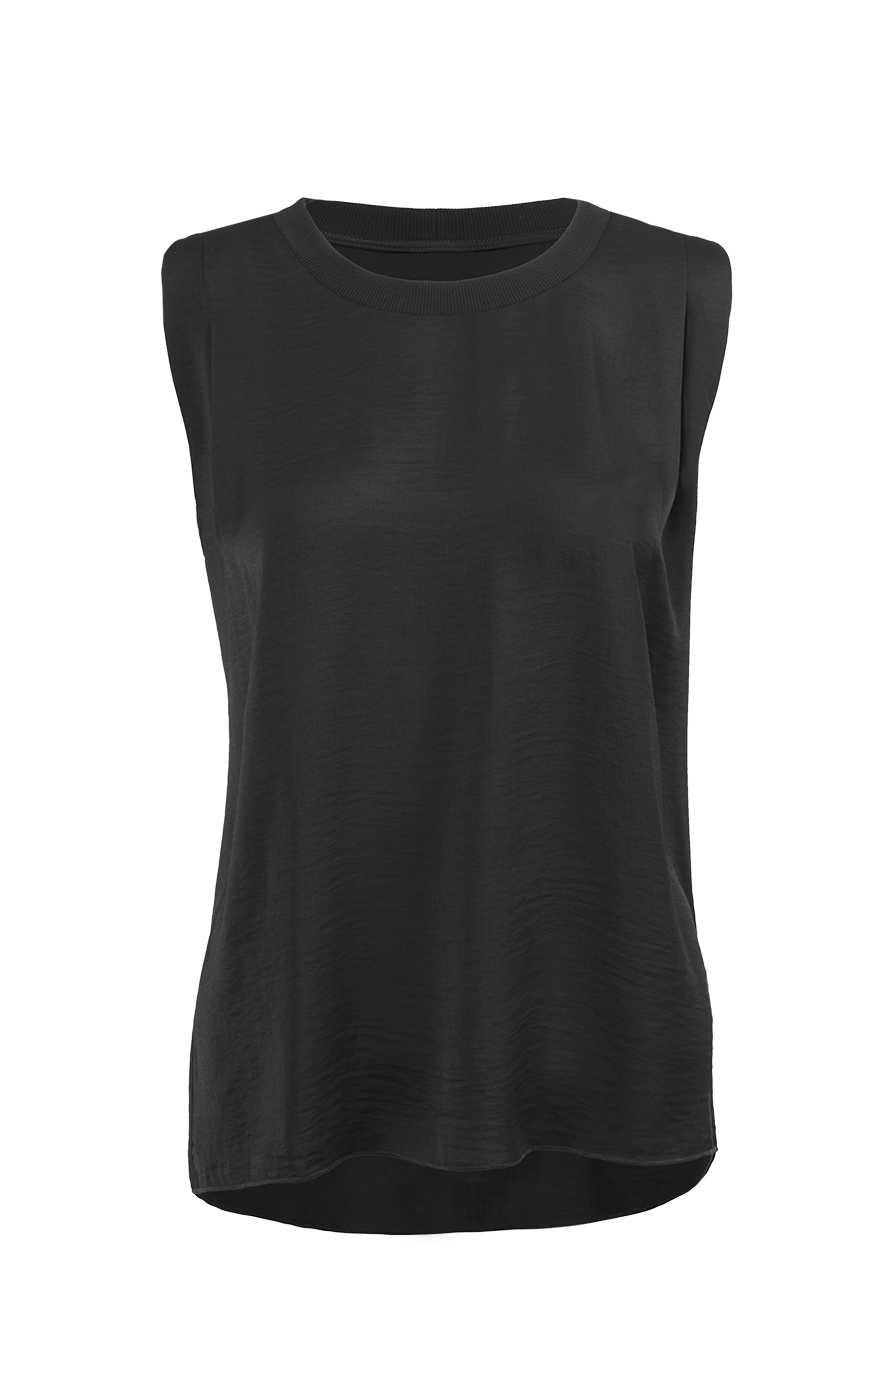 Complete Top in Black Front